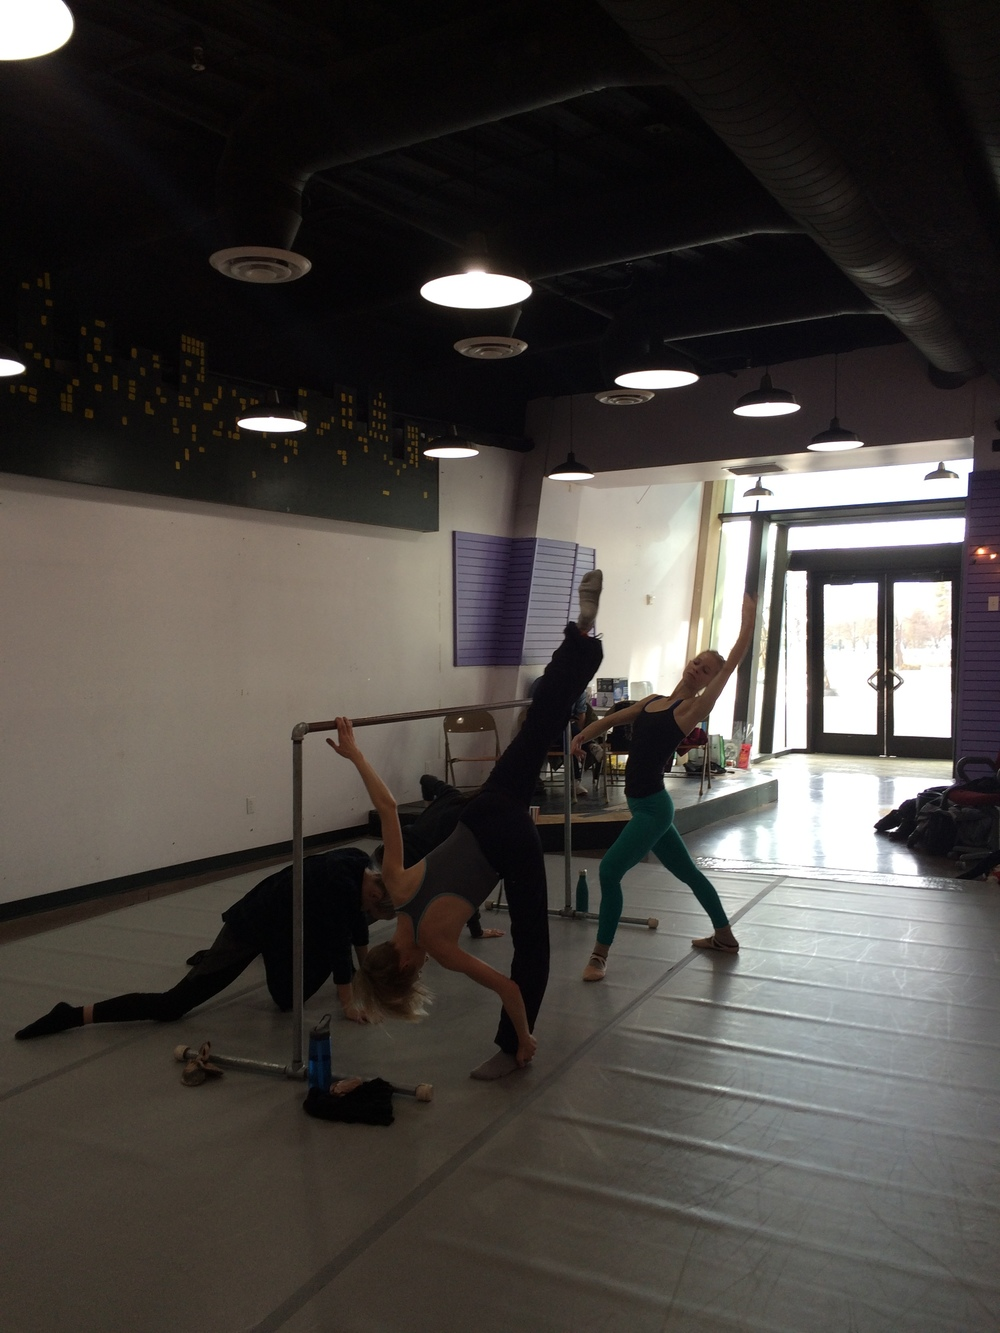 Municipal Ballet Co. members in class at our temporary studio at the Salt Lake City Public Library